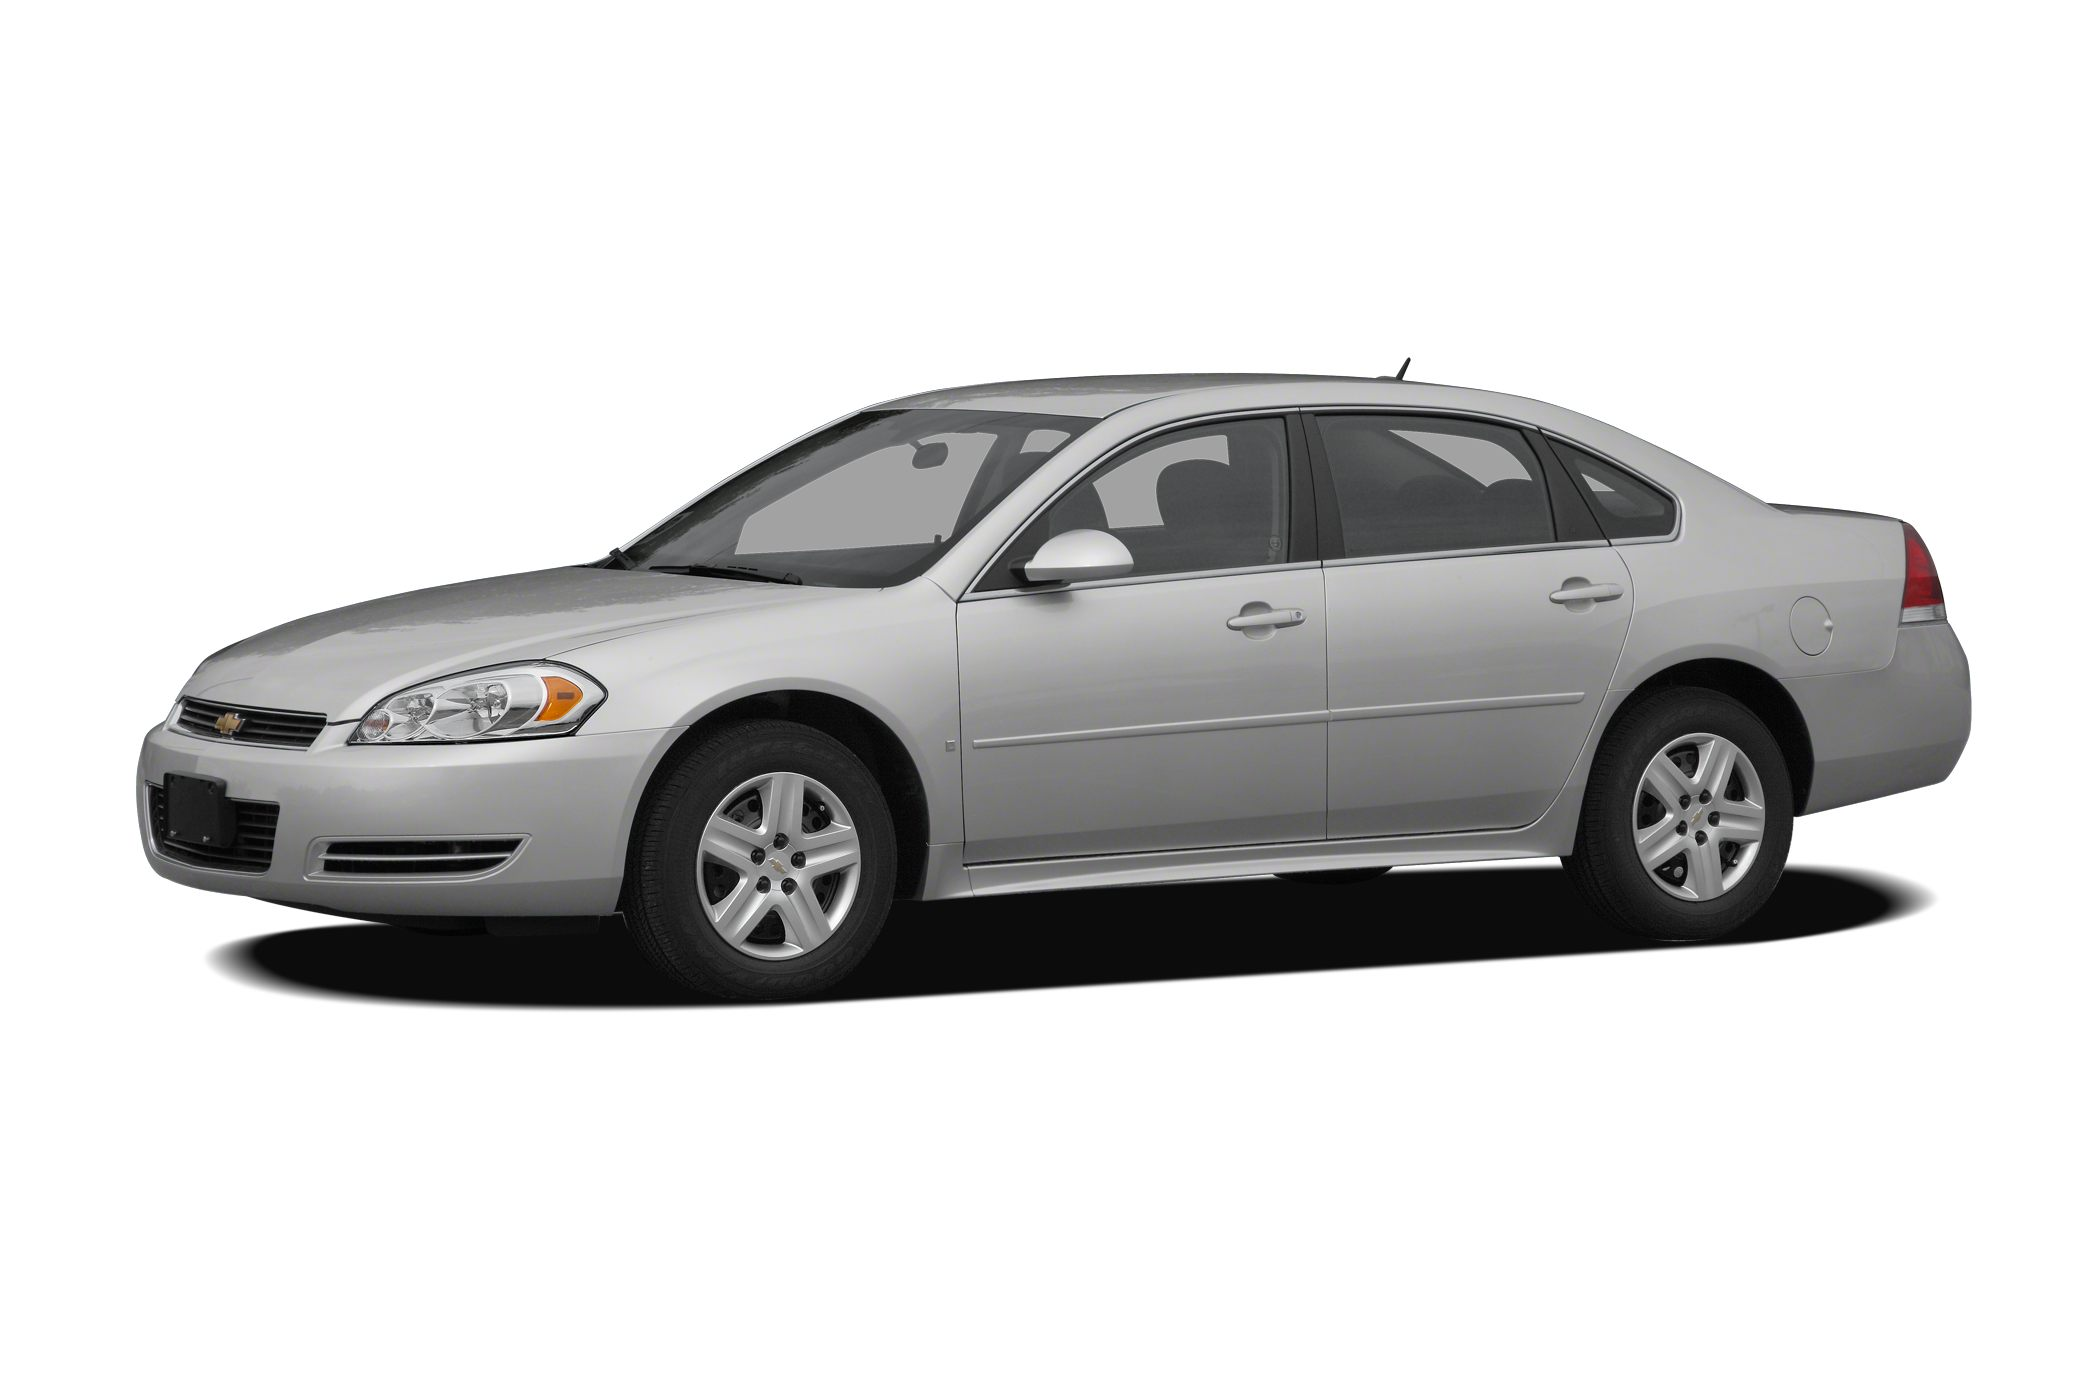 2010 Chevrolet Impala LTZ Sedan for sale in Porterville for $9,500 with 133,197 miles.